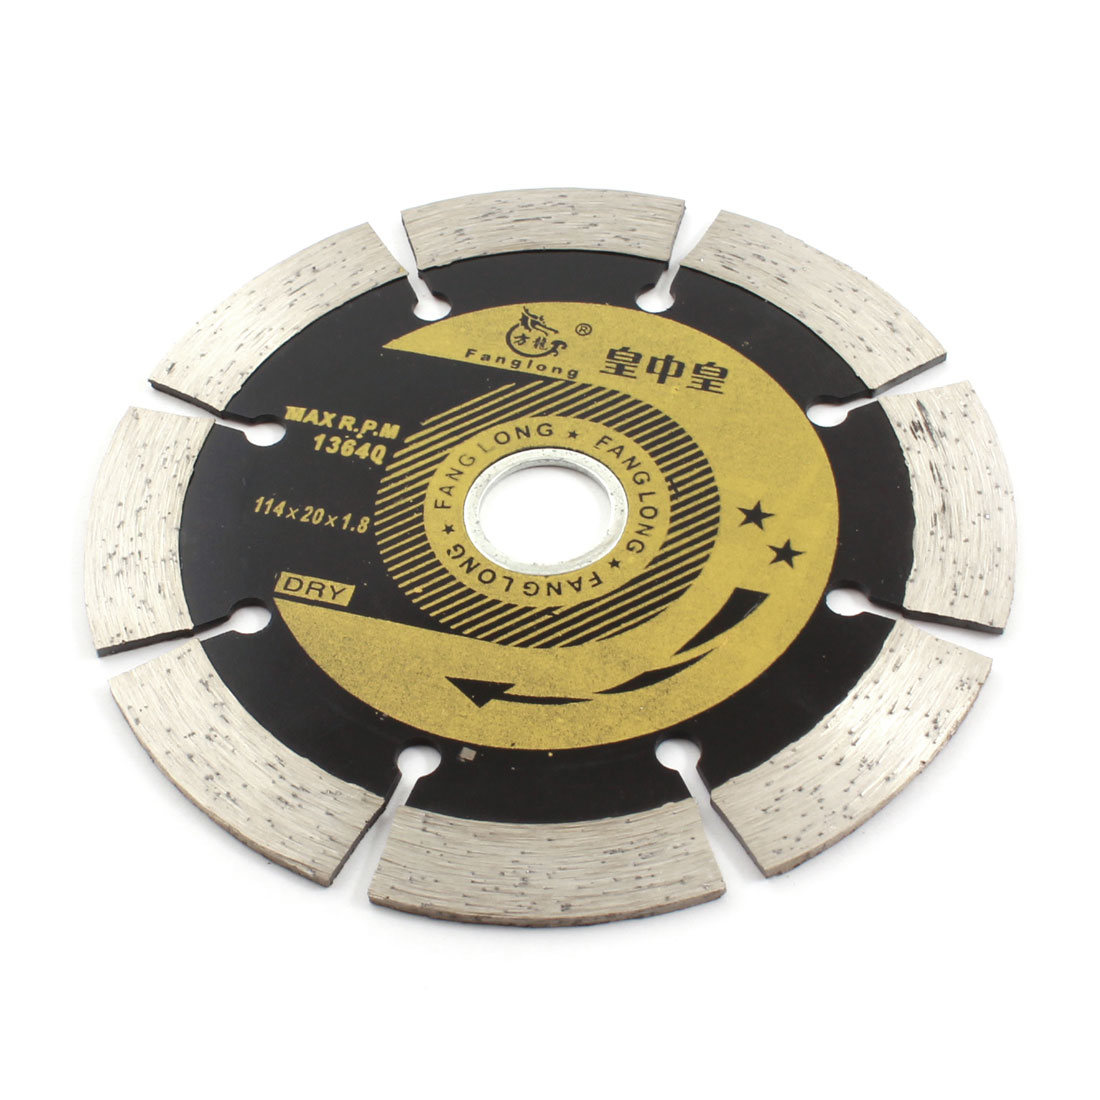 Silver Gray Black Marble Cutting 114mm Dia Diamond Saw Cutter 13640RPM